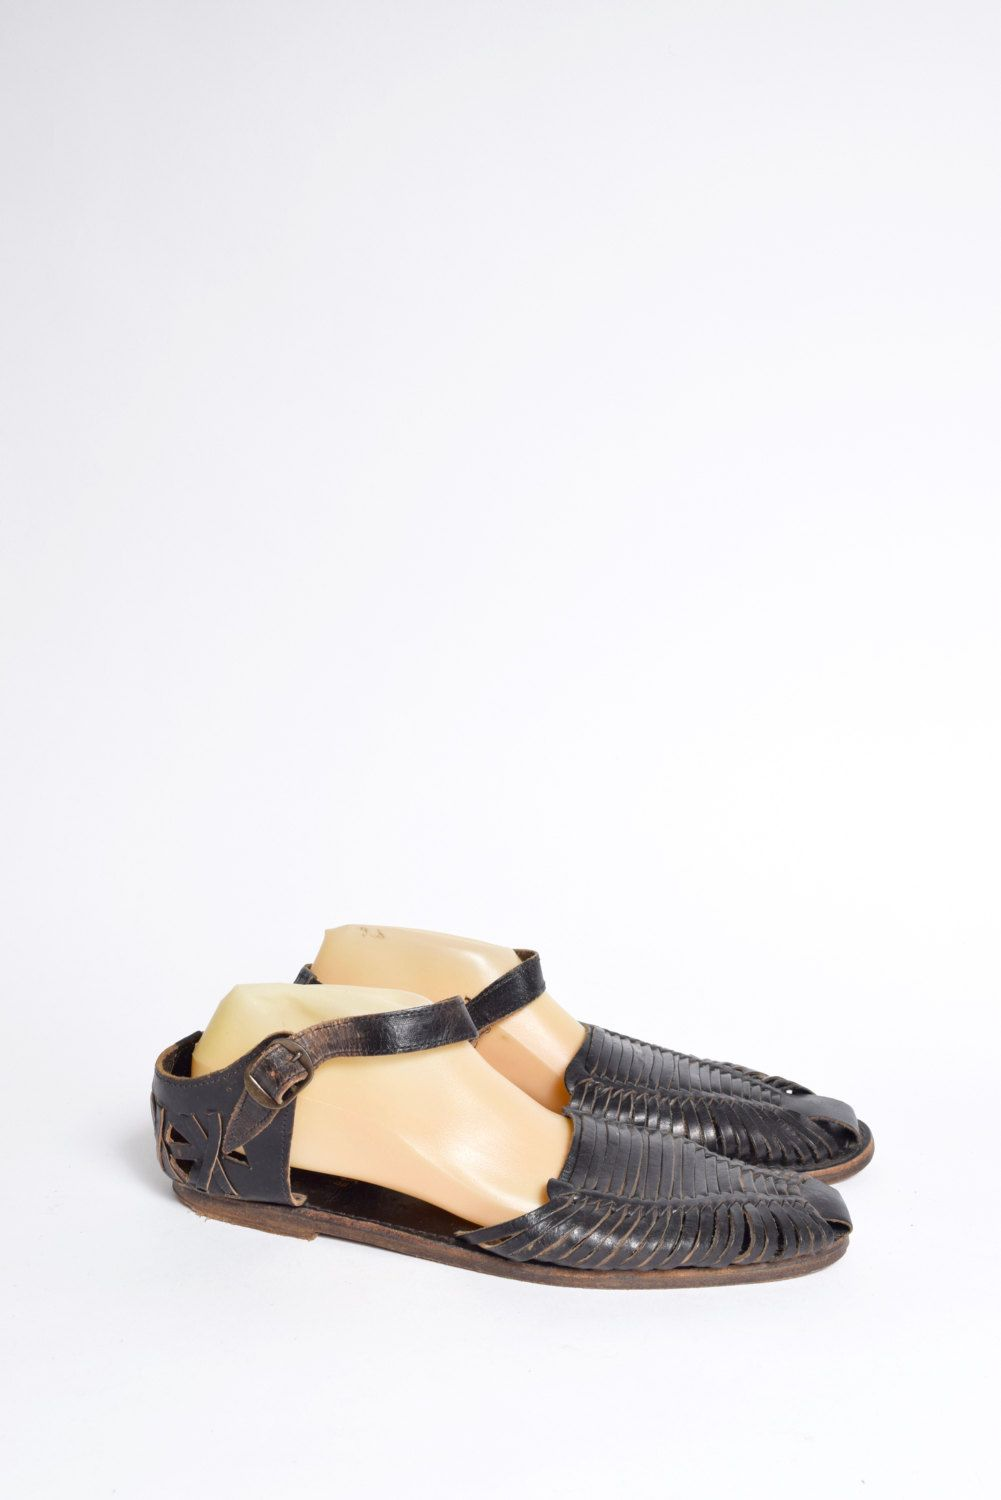 s vintage leather wicker sandals from by